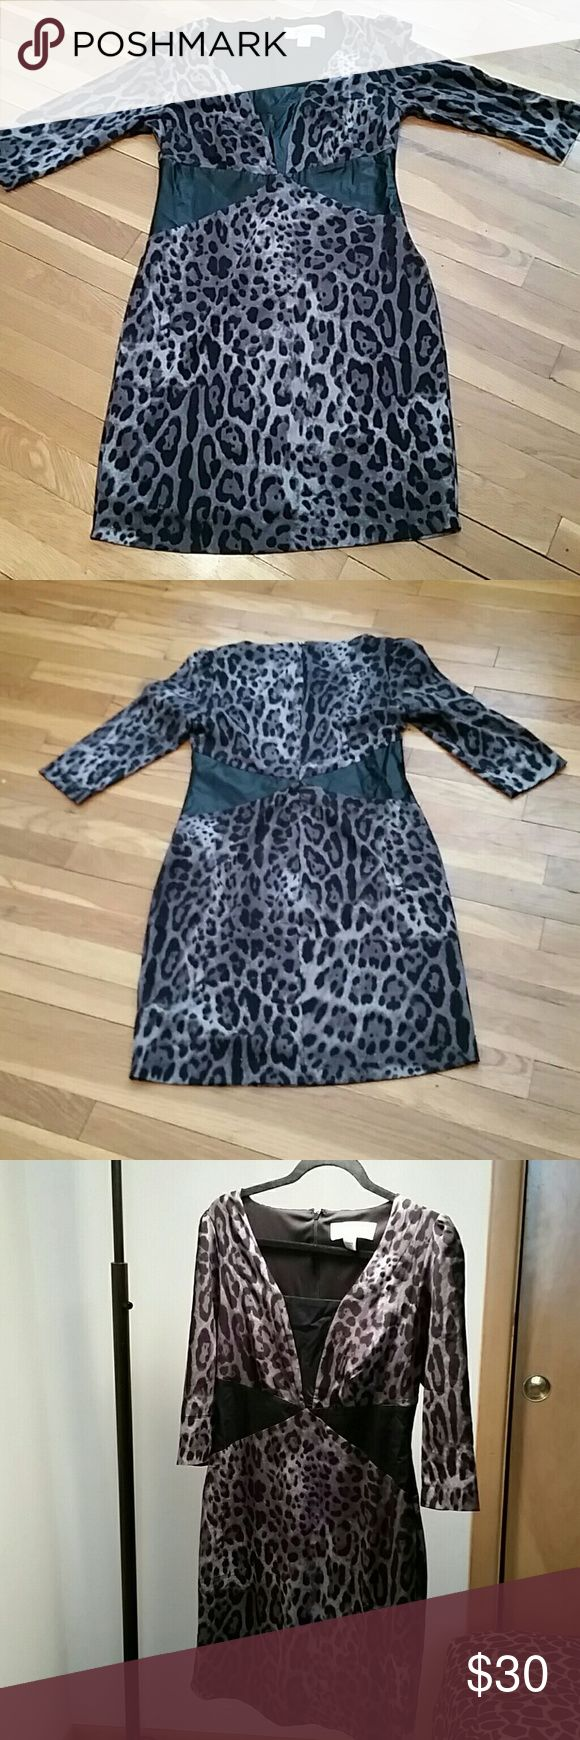 Animal print Faux leather Dress Animal print mid sleeved dress faux leather at waist and bust line dress is fully lined with built-in slip dress is zippered andthe print is charcoal gray and black and Dress has never been worn COLLEEN LOPAZ  COLLECTION Dresses